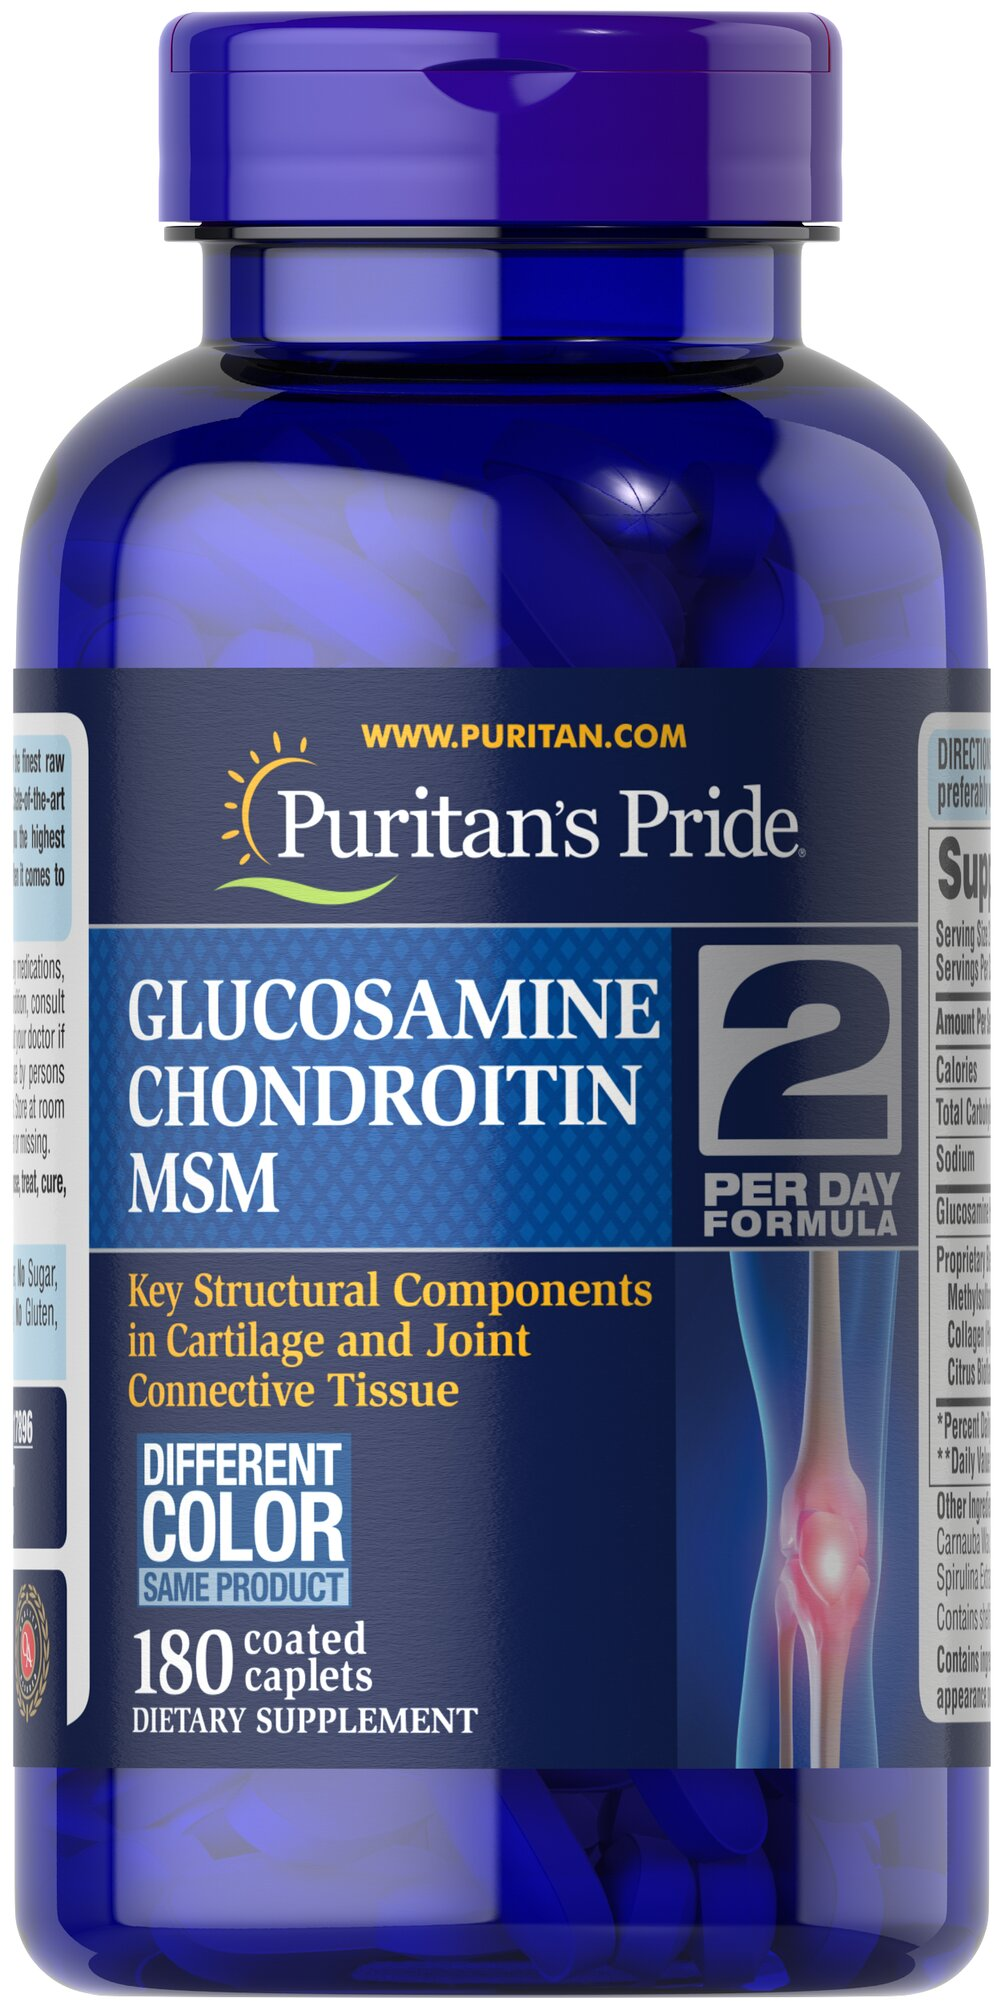 Triple Strength Glucosamine, Chondroitin & MSM Joint Soother® <p>Lubricates joints to improve flexibility**</p><p>Supports connective tissue in and around the joints**</p><p>Triple Strength Glucosamine, Chondroitin and MSM is the most powerful joint soother yet!** Just two caplets per day will give you triple strength protection with 1500 mg of Glucosamine, and 1700 mg of our joint nourishing proprietary blend.**</p> 180 Caplets  $43.99